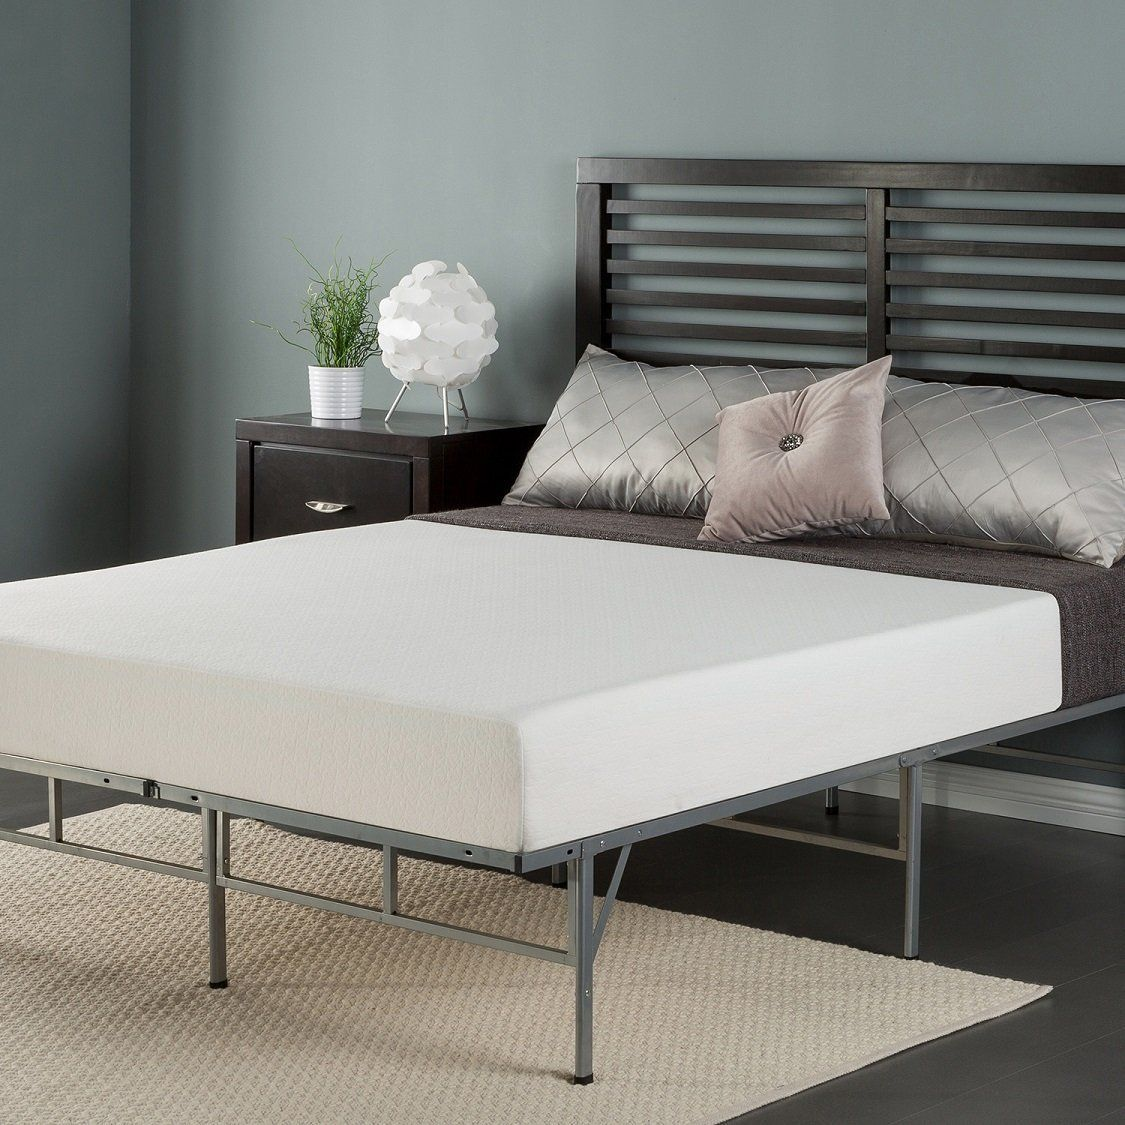 Zinus 8 Inch Memory Foam Mattress and Easy To Assemble Smart ...